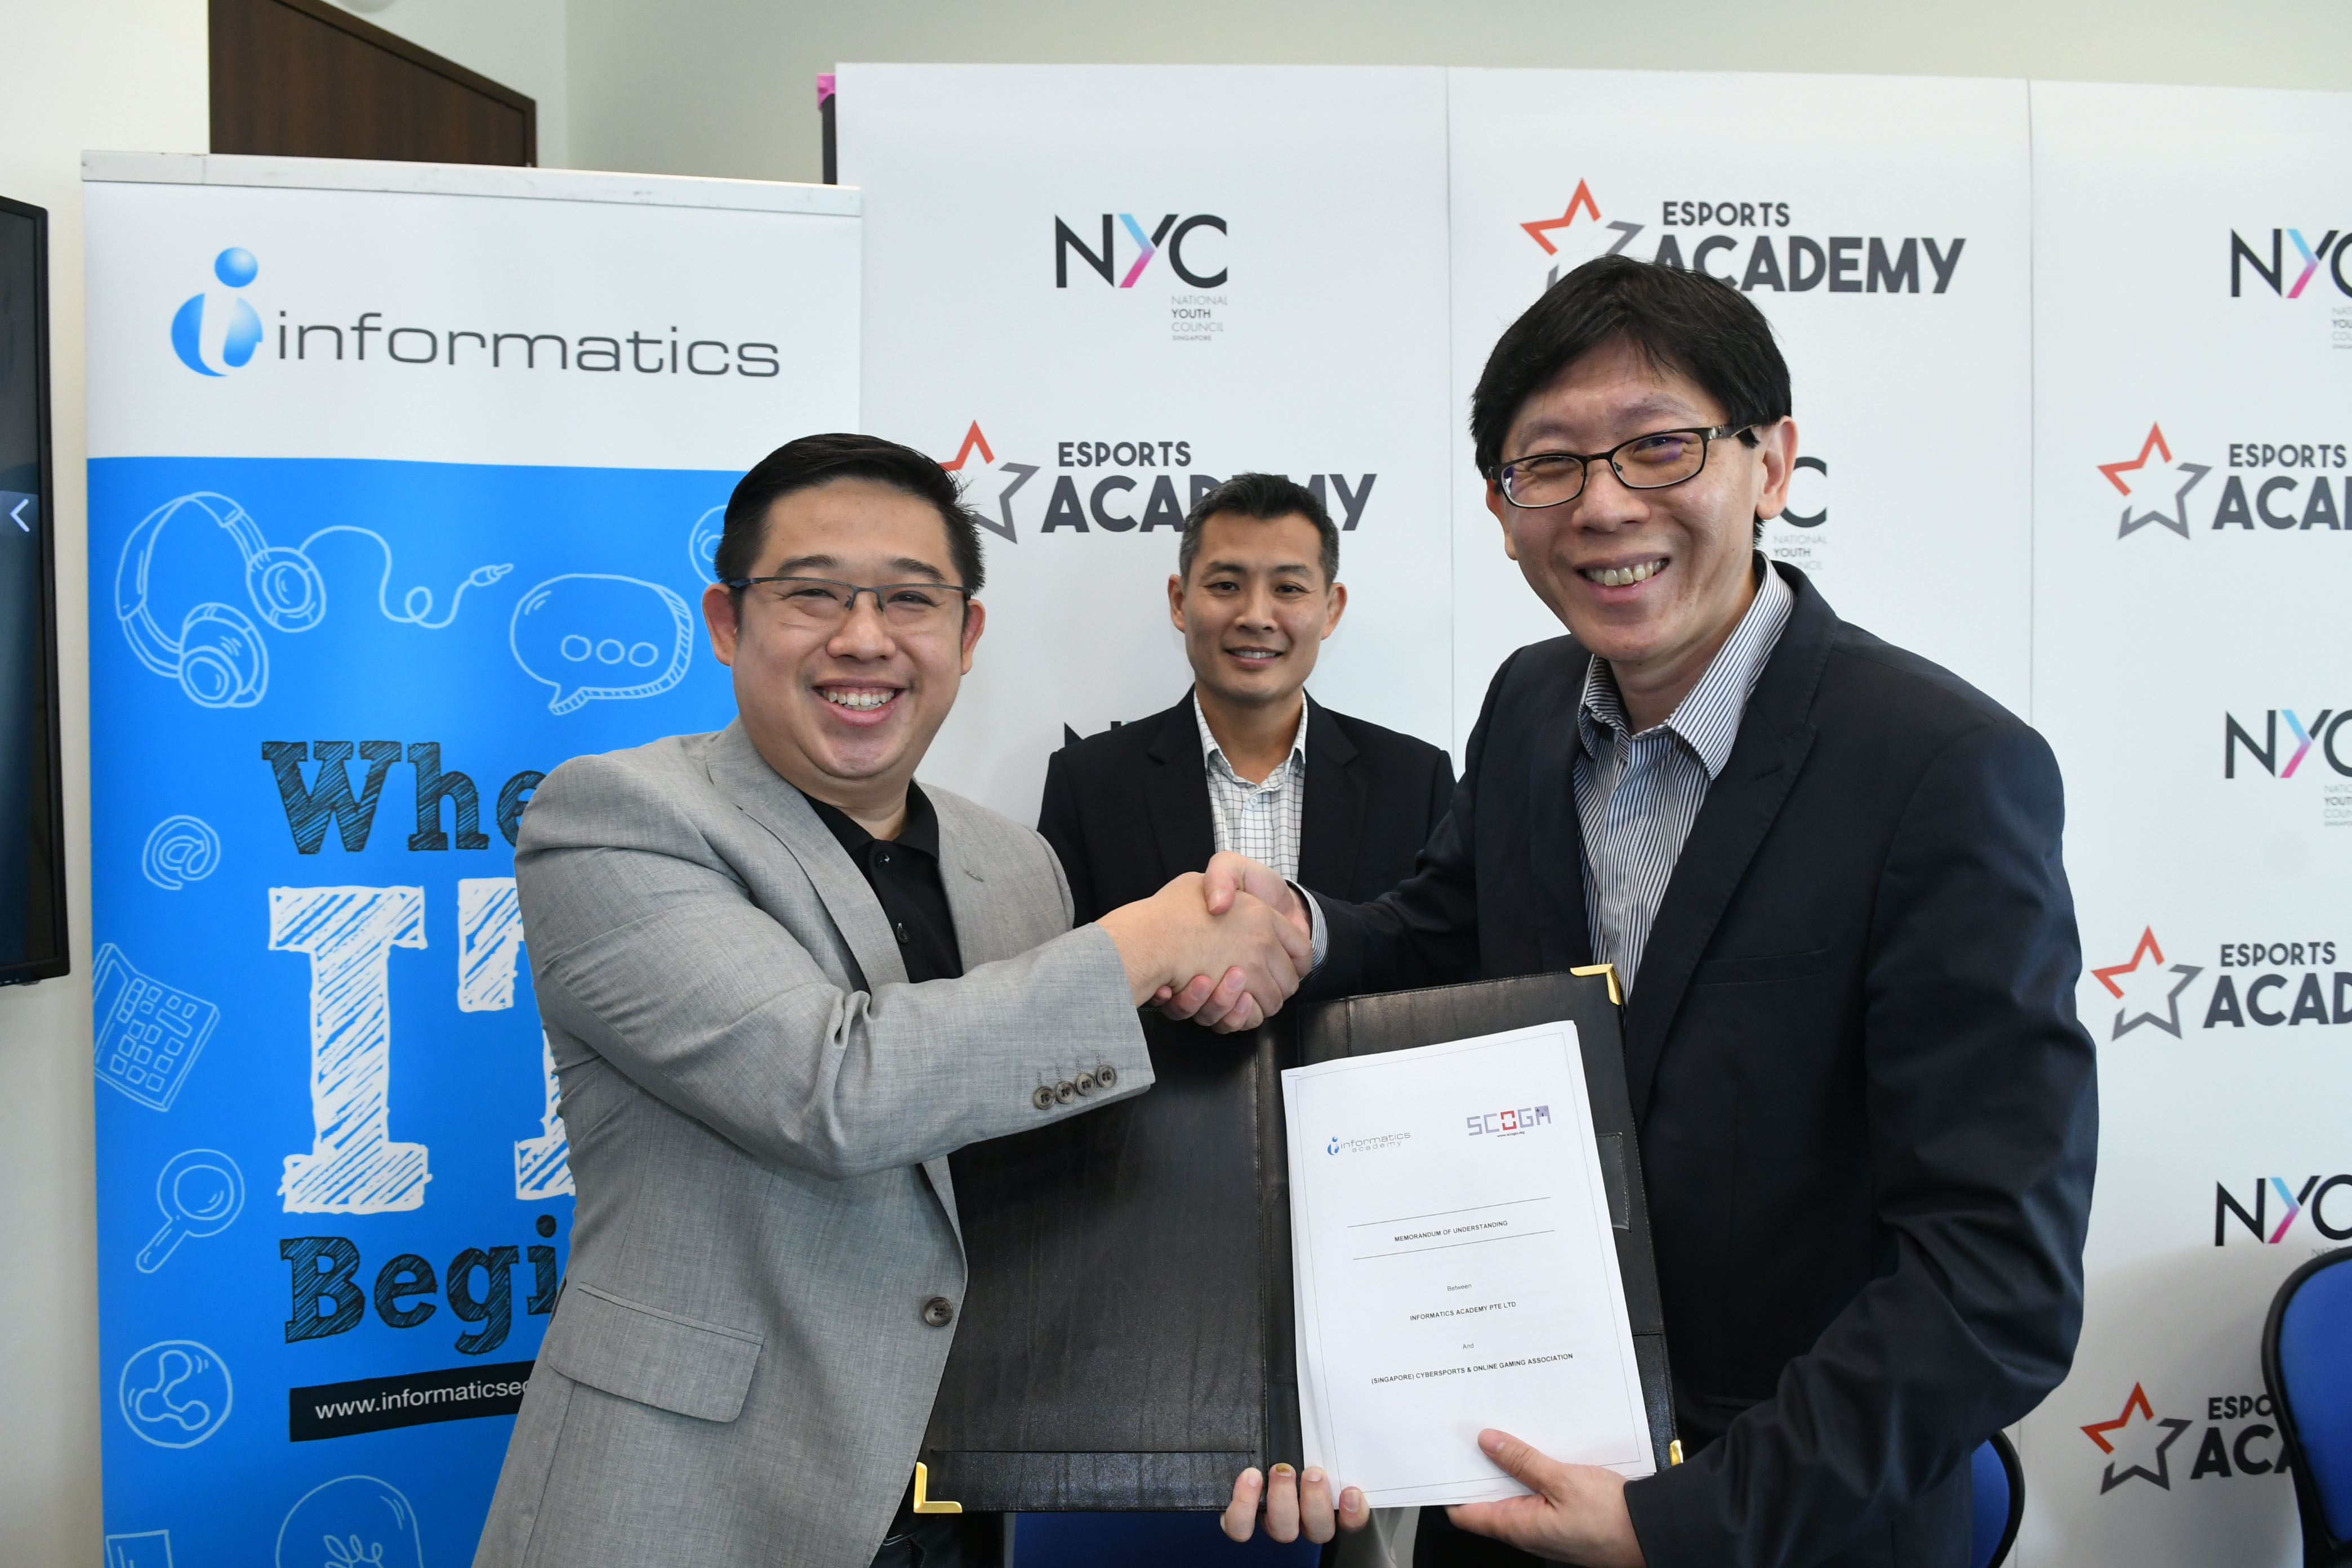 (3) SCOGA And Informatics Academy Handshake At Signing Ceremony & Launch Of Esports Academy